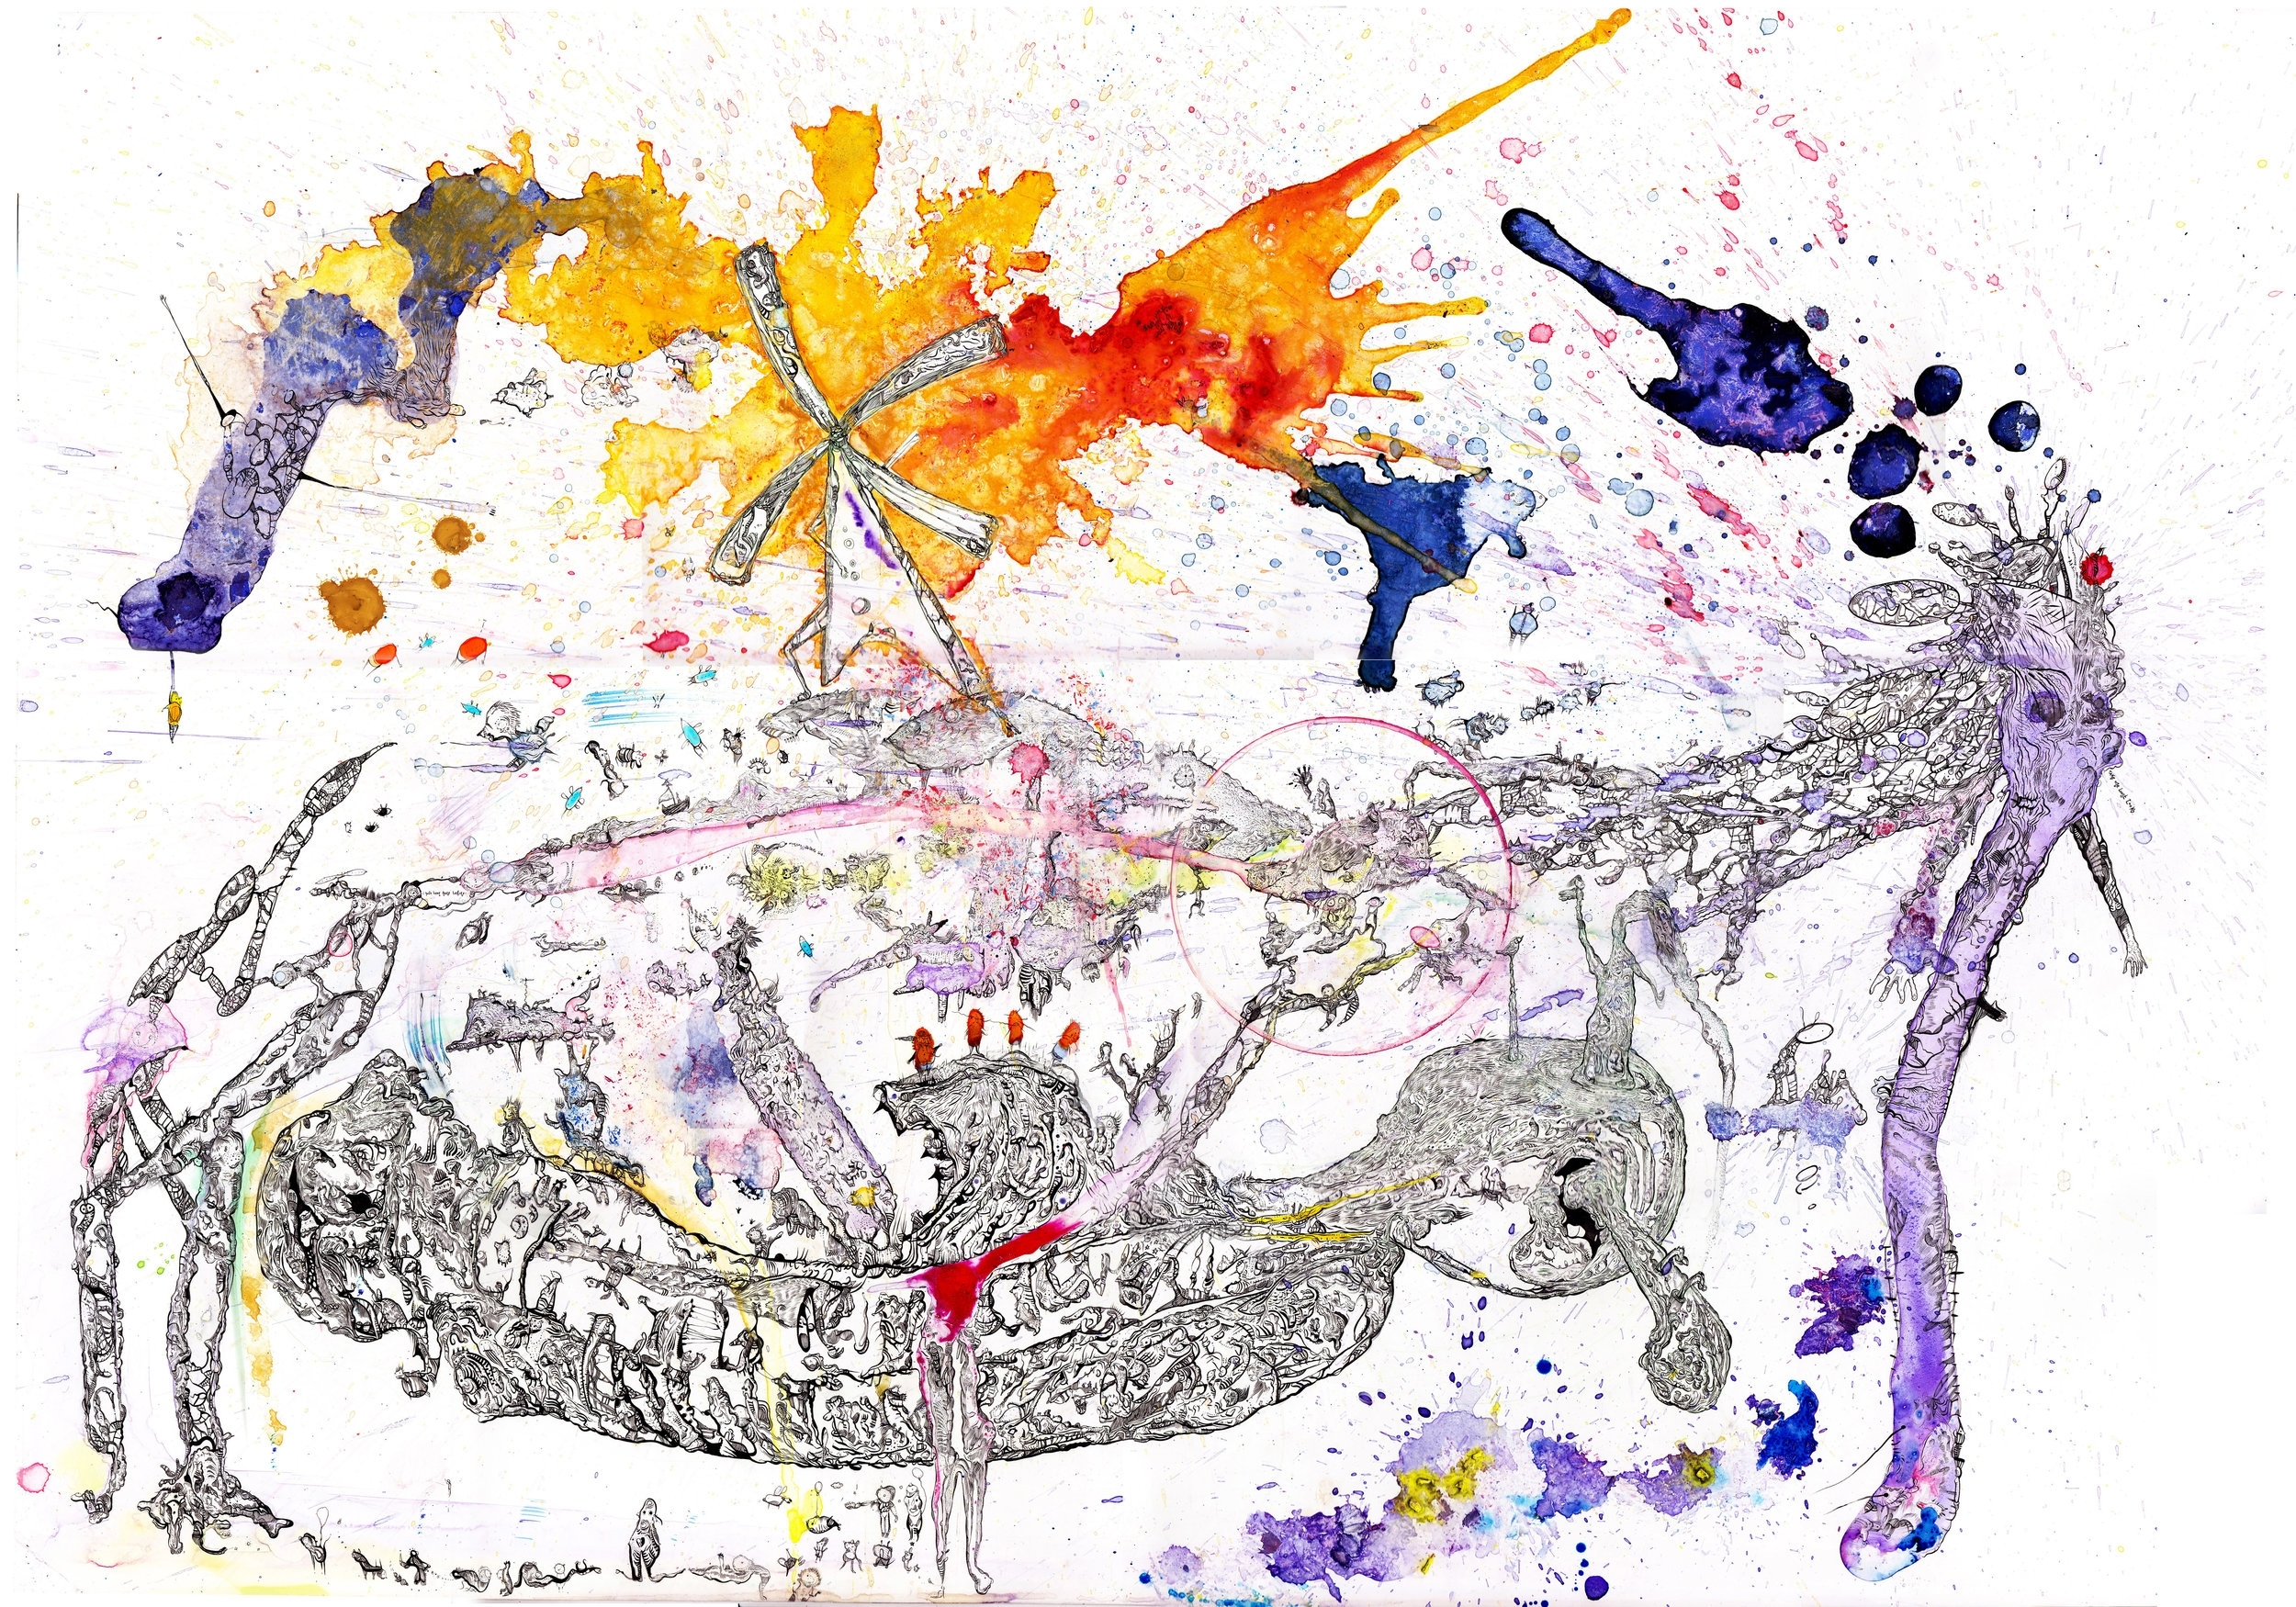 "Les harmonies salvatrices Pen & Ink & Water Color on Paper 41"" x 28"" 2017"